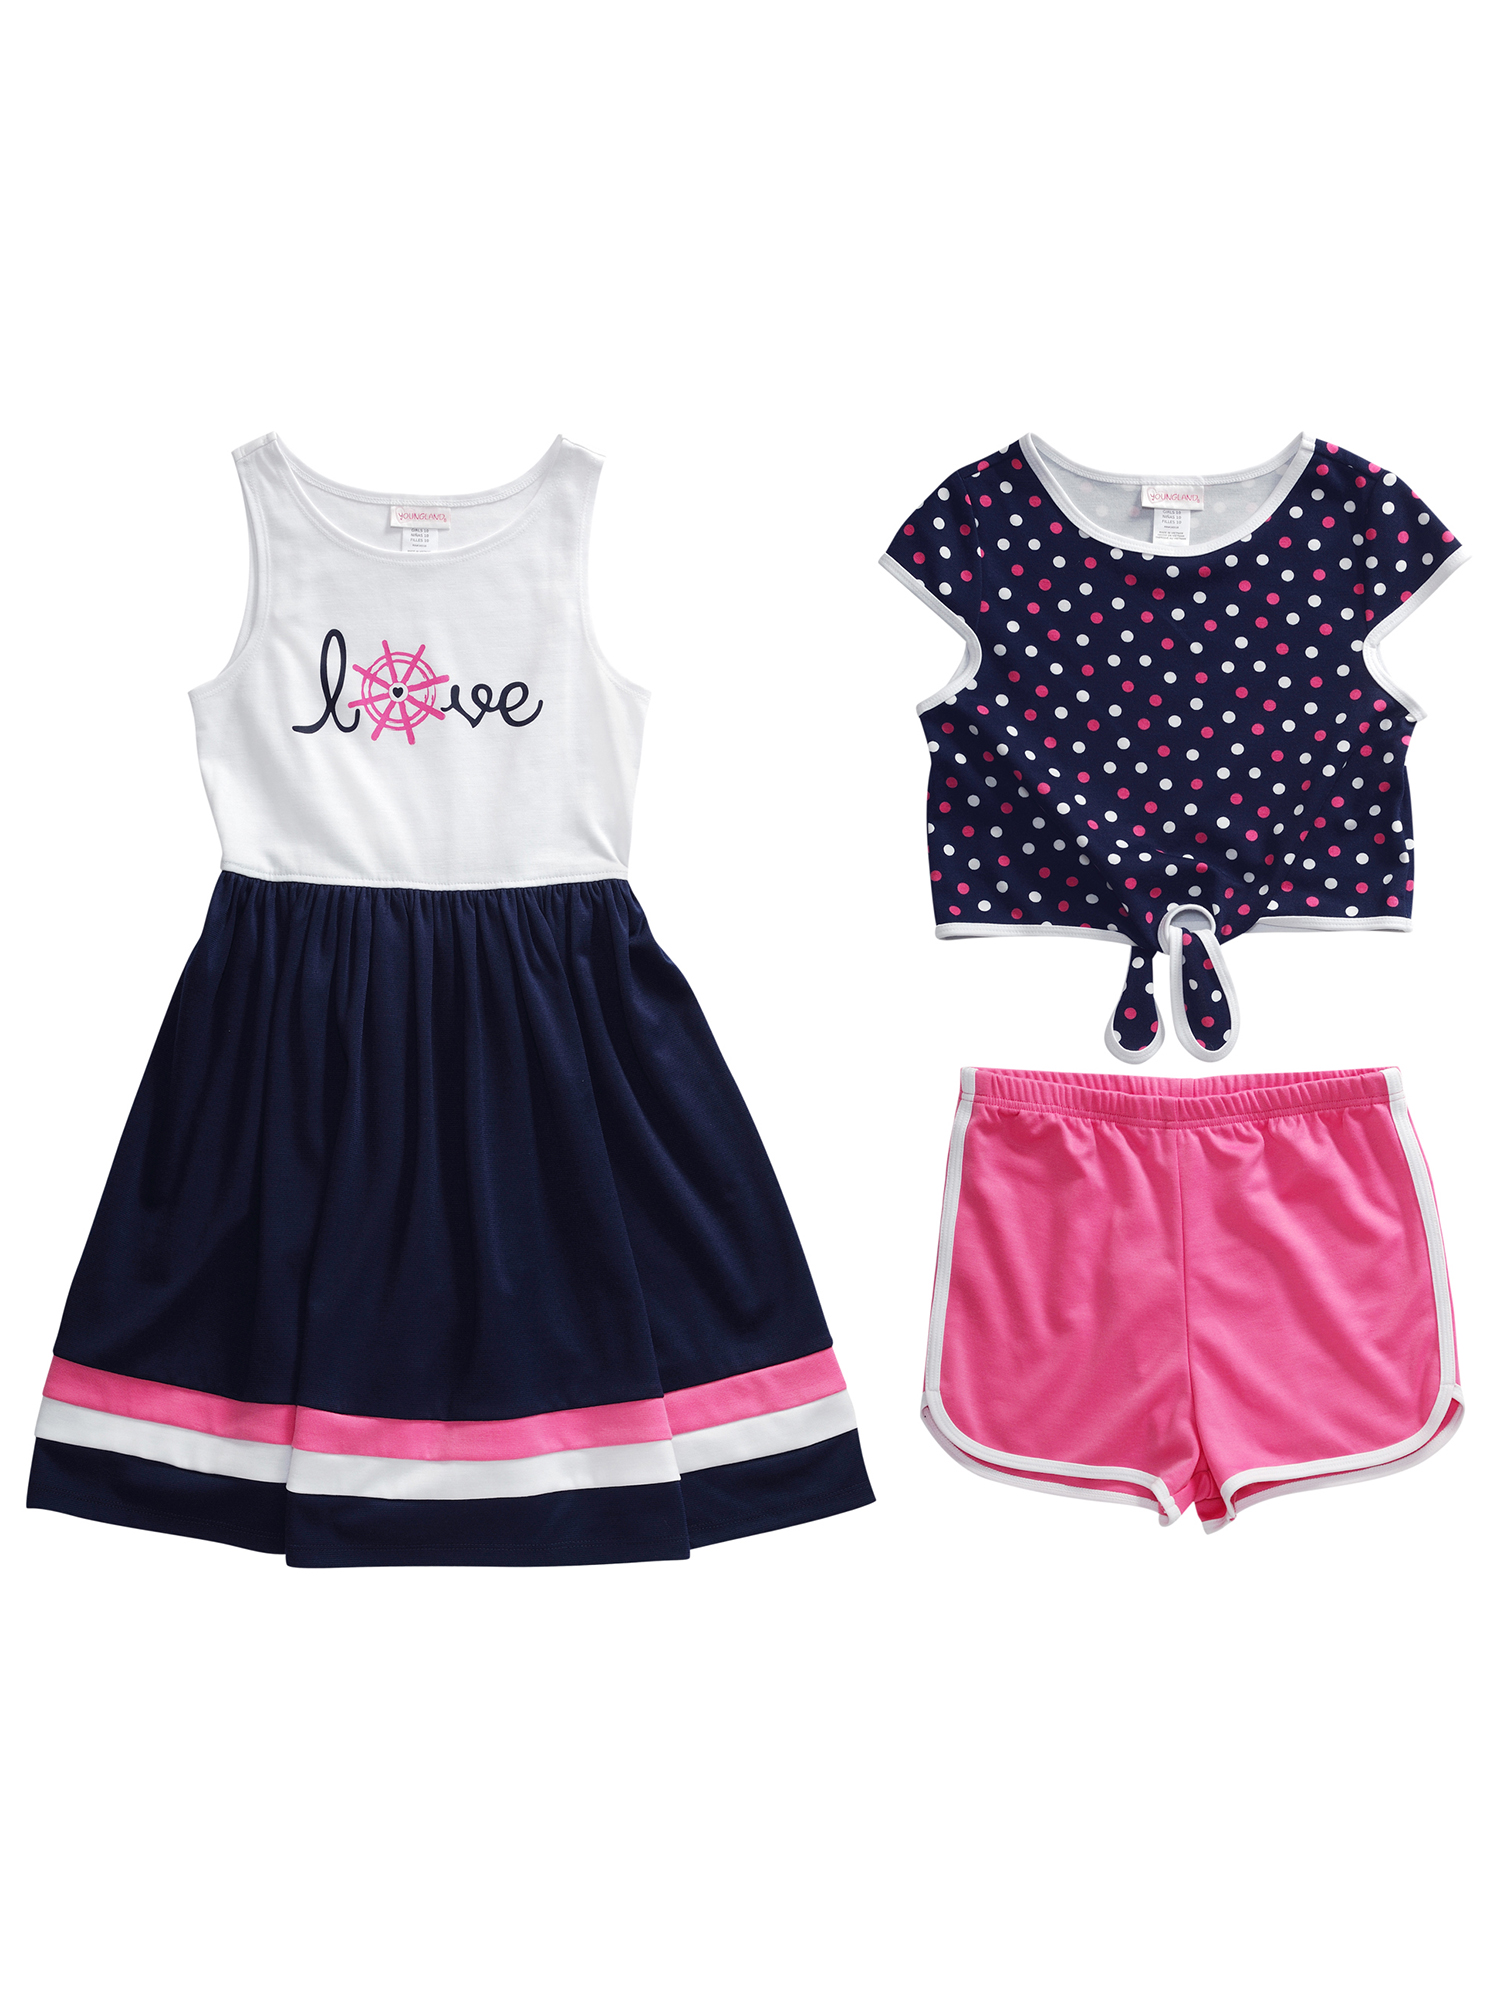 Little Girls' 4-6X Dress, Top, and Shorts 3-Piece Outfit Set